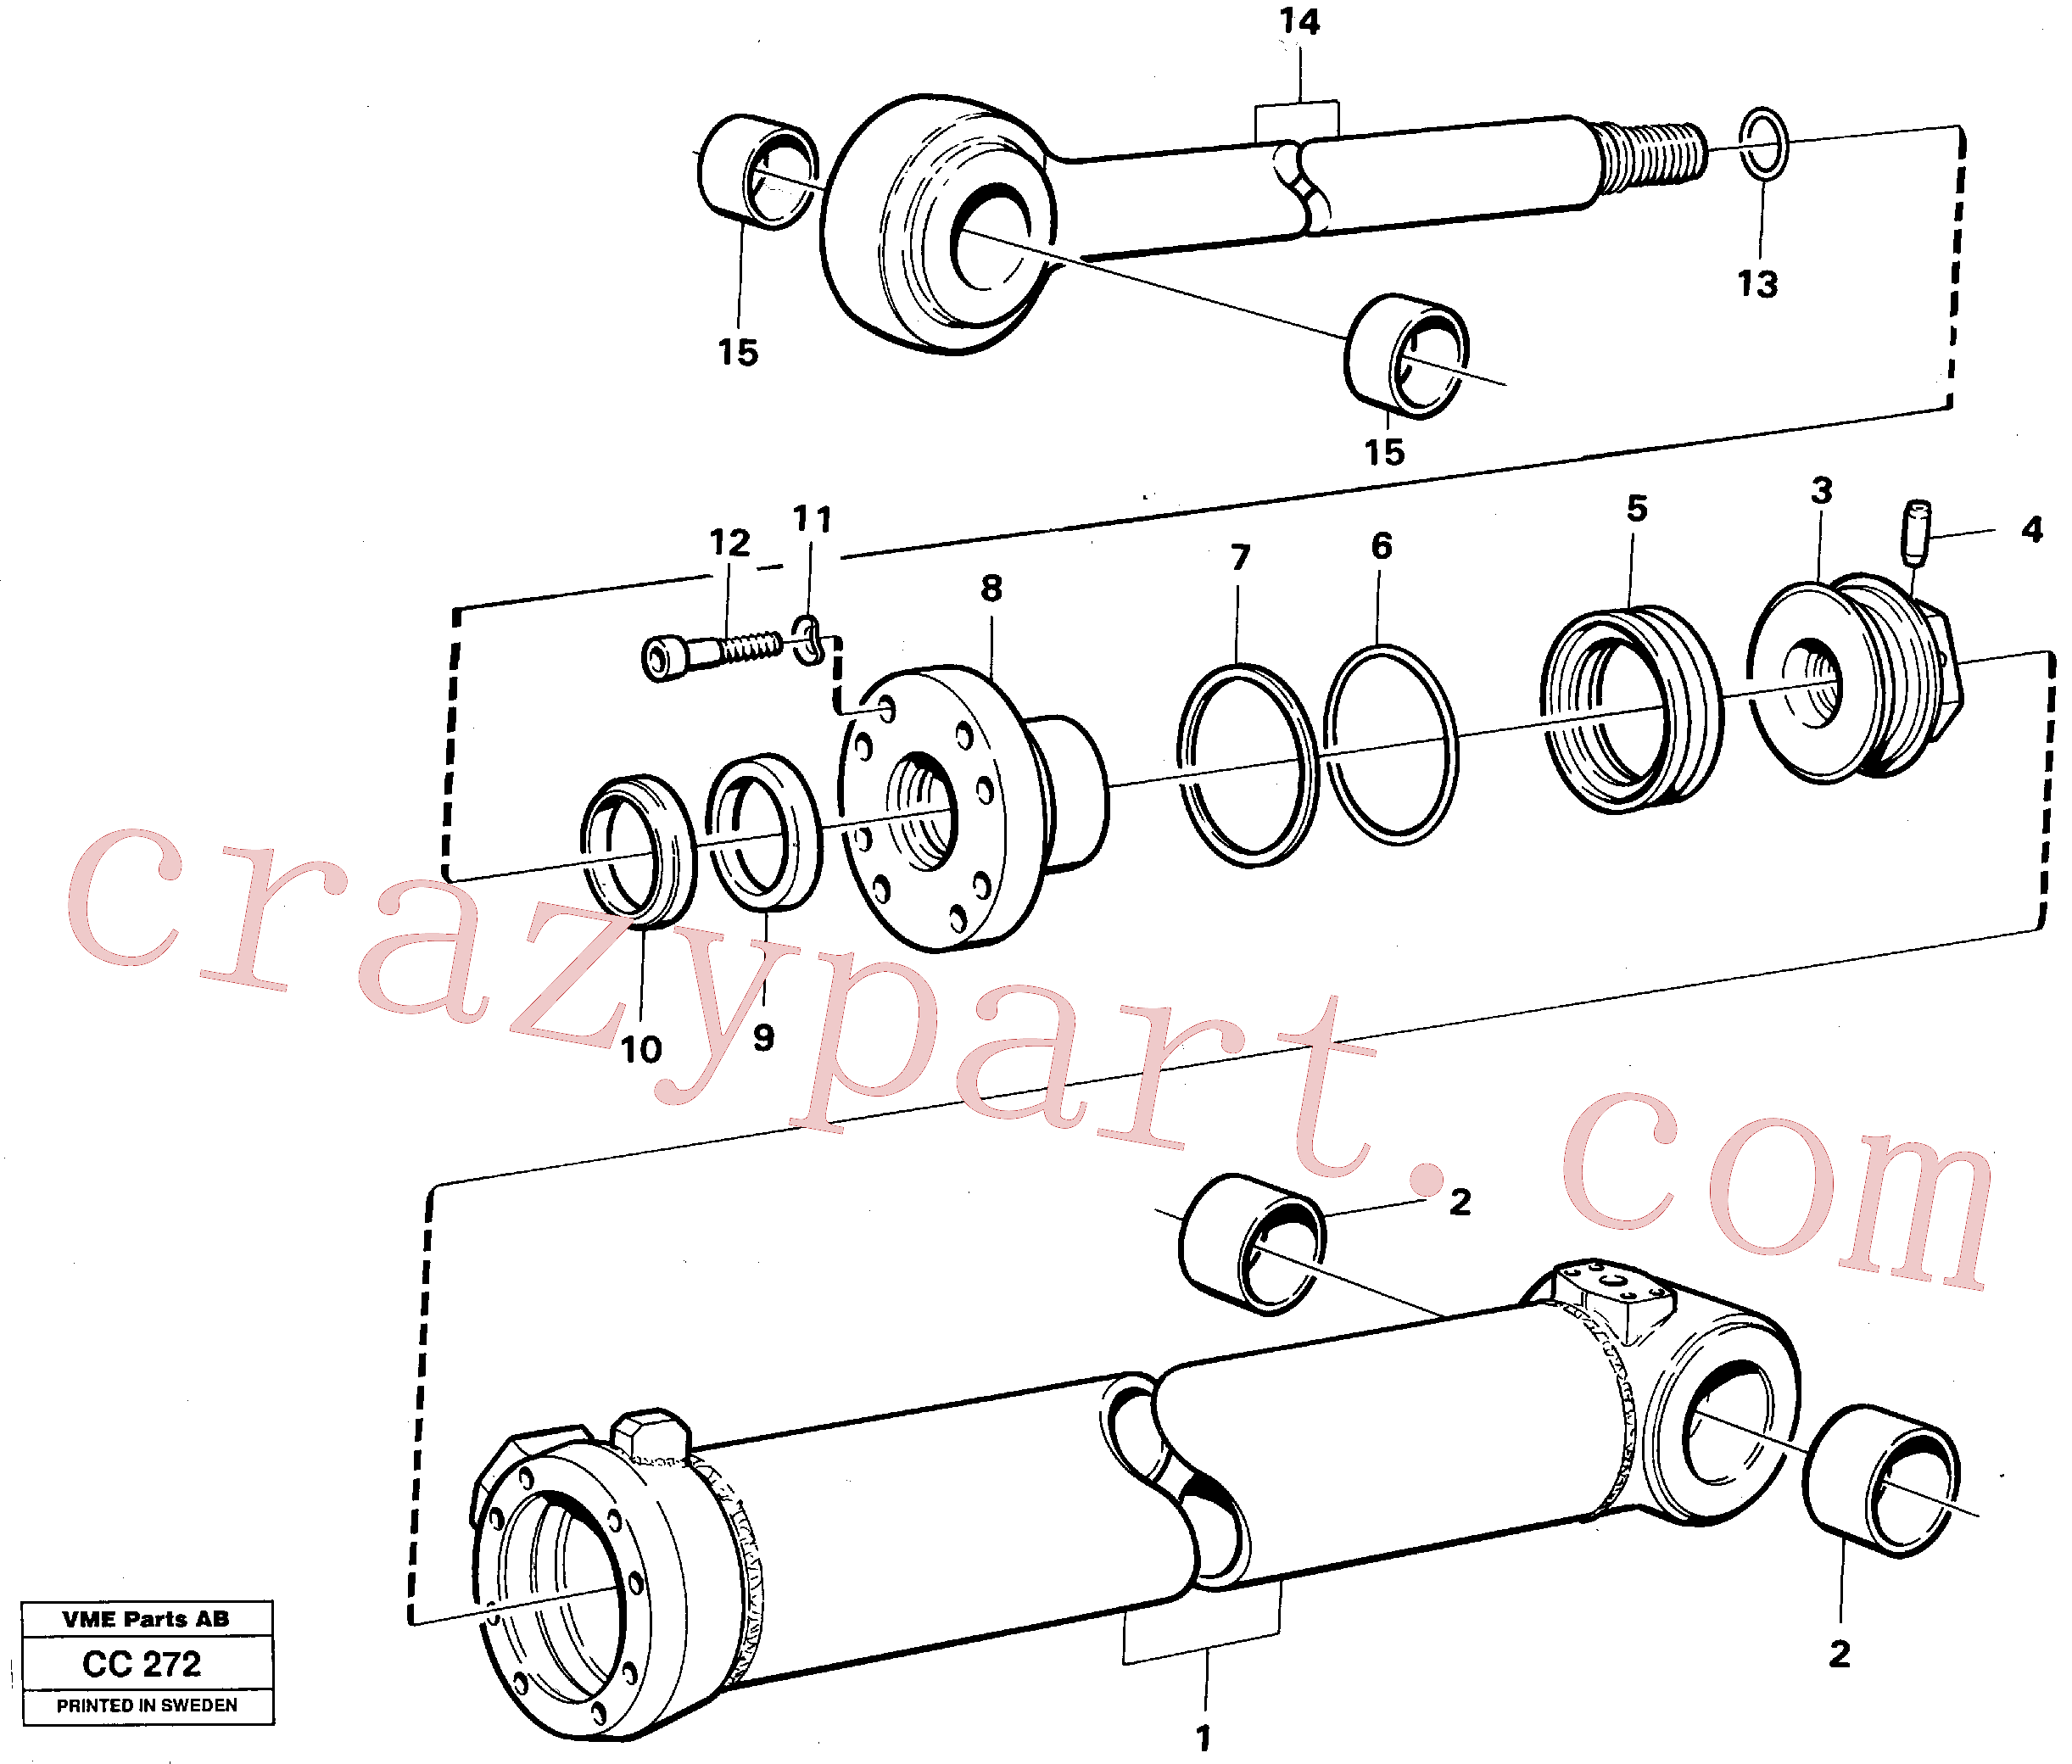 VOE4724499 for Volvo Extendable dipper cylinder(CC272 assembly)